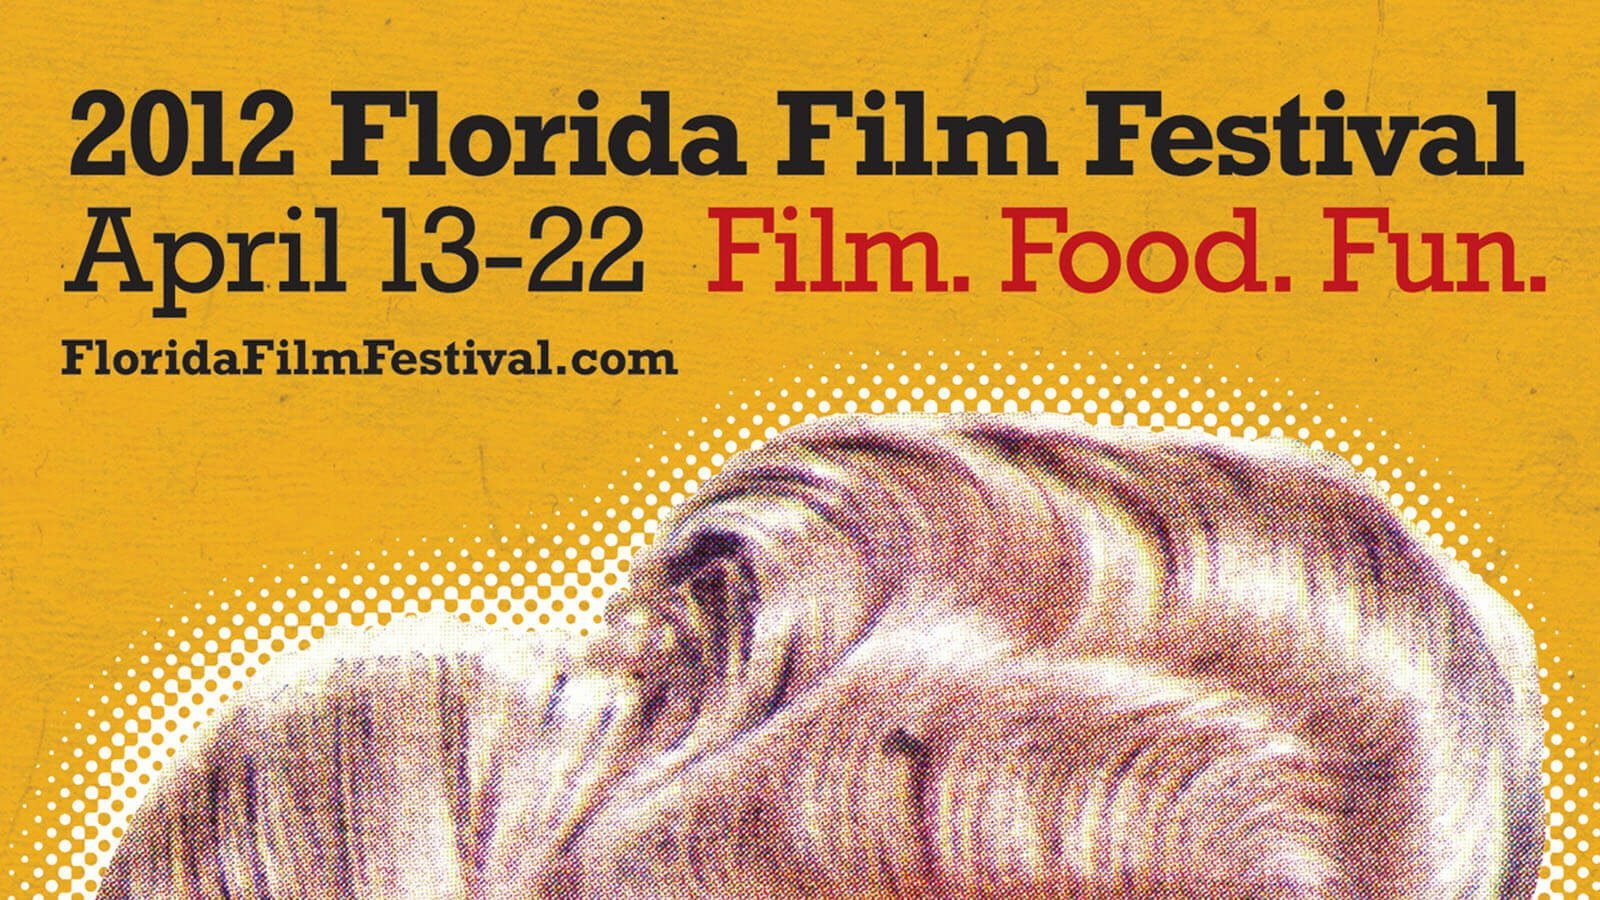 It's Florida Film Festival time! - Hero image